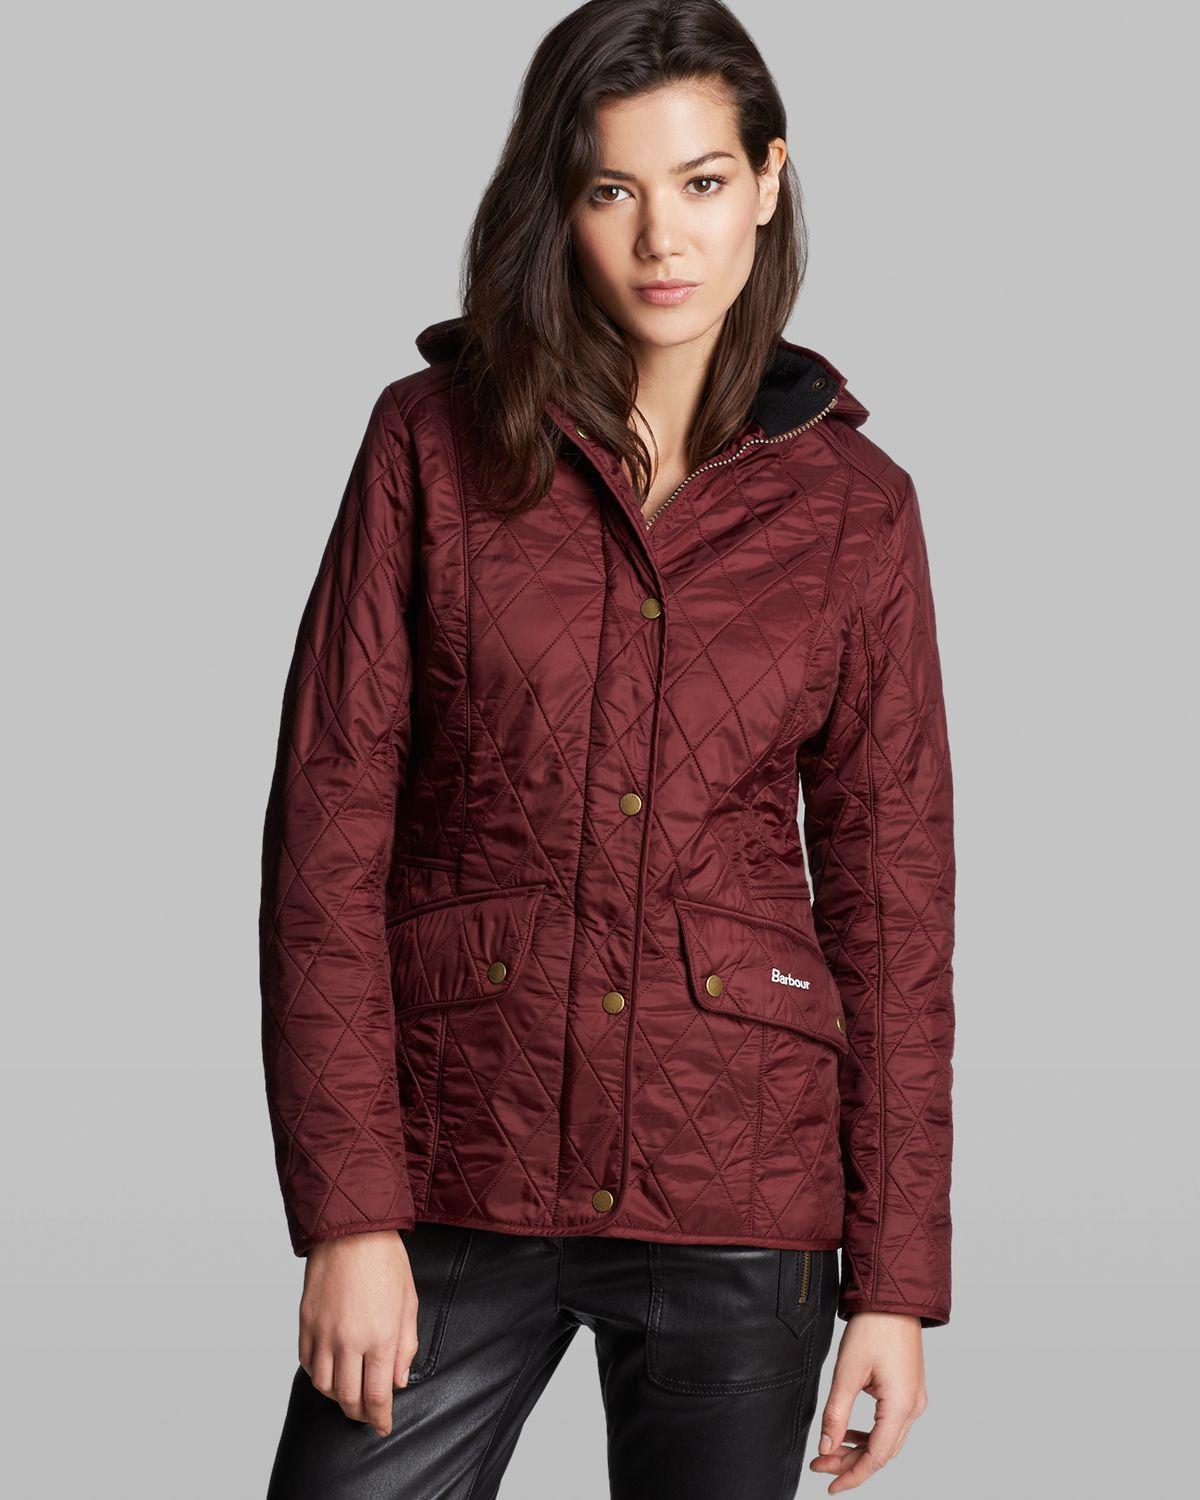 Lyst - Barbour Jacket - Chromatic Quilted in Red